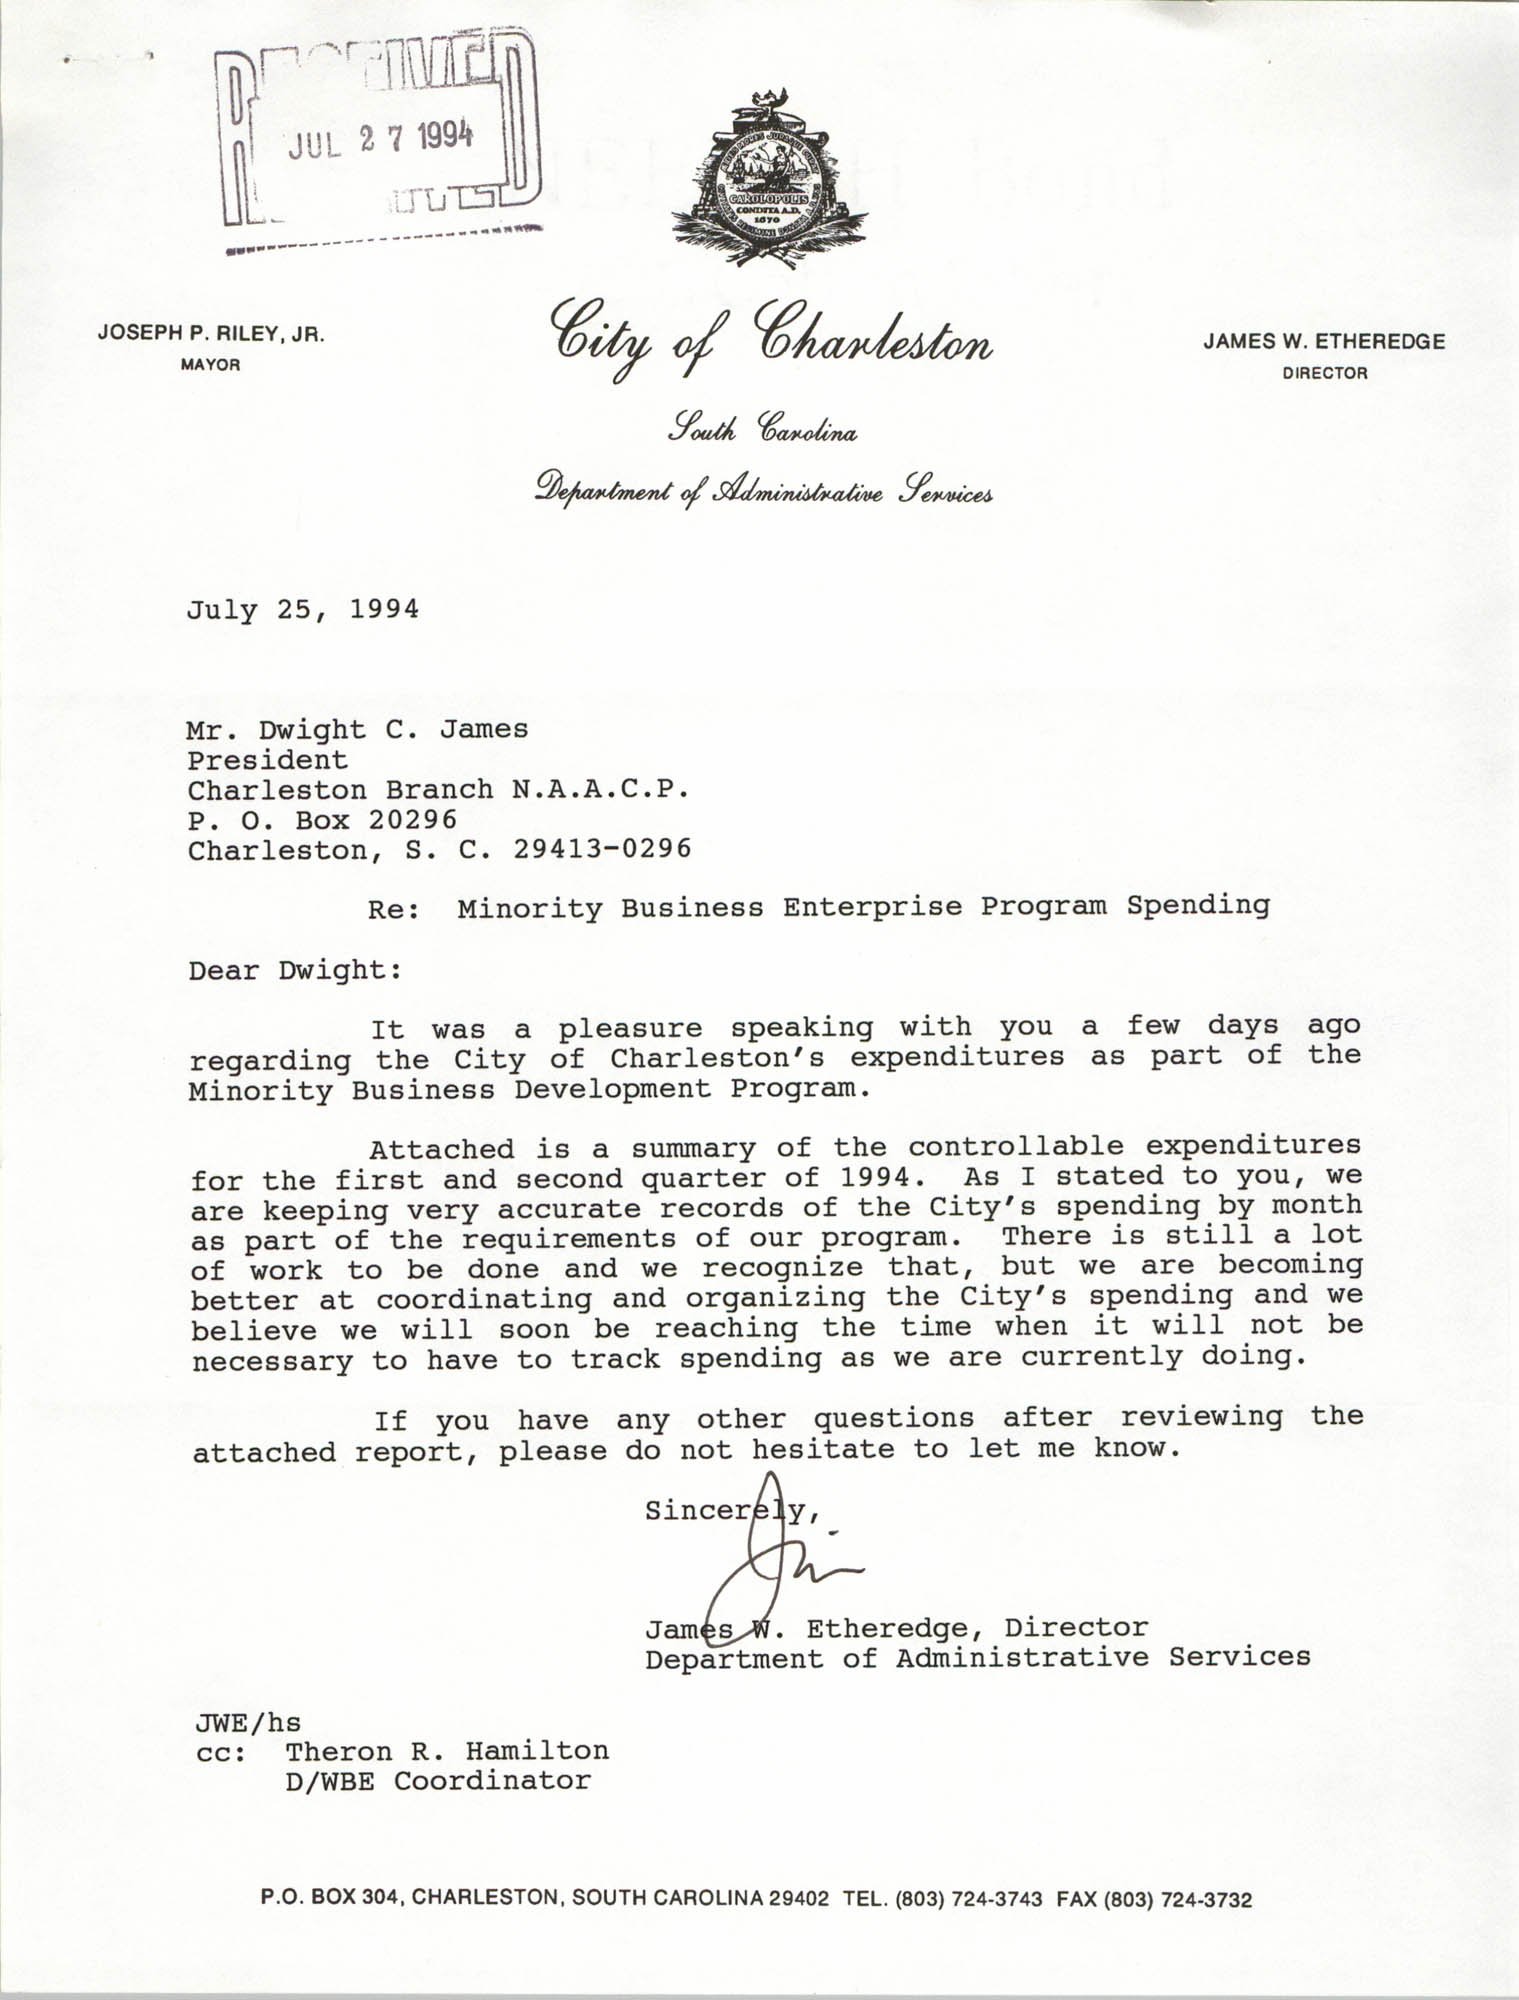 Letter from James W. Etheredge to Dwight C. James, July 25, 1994